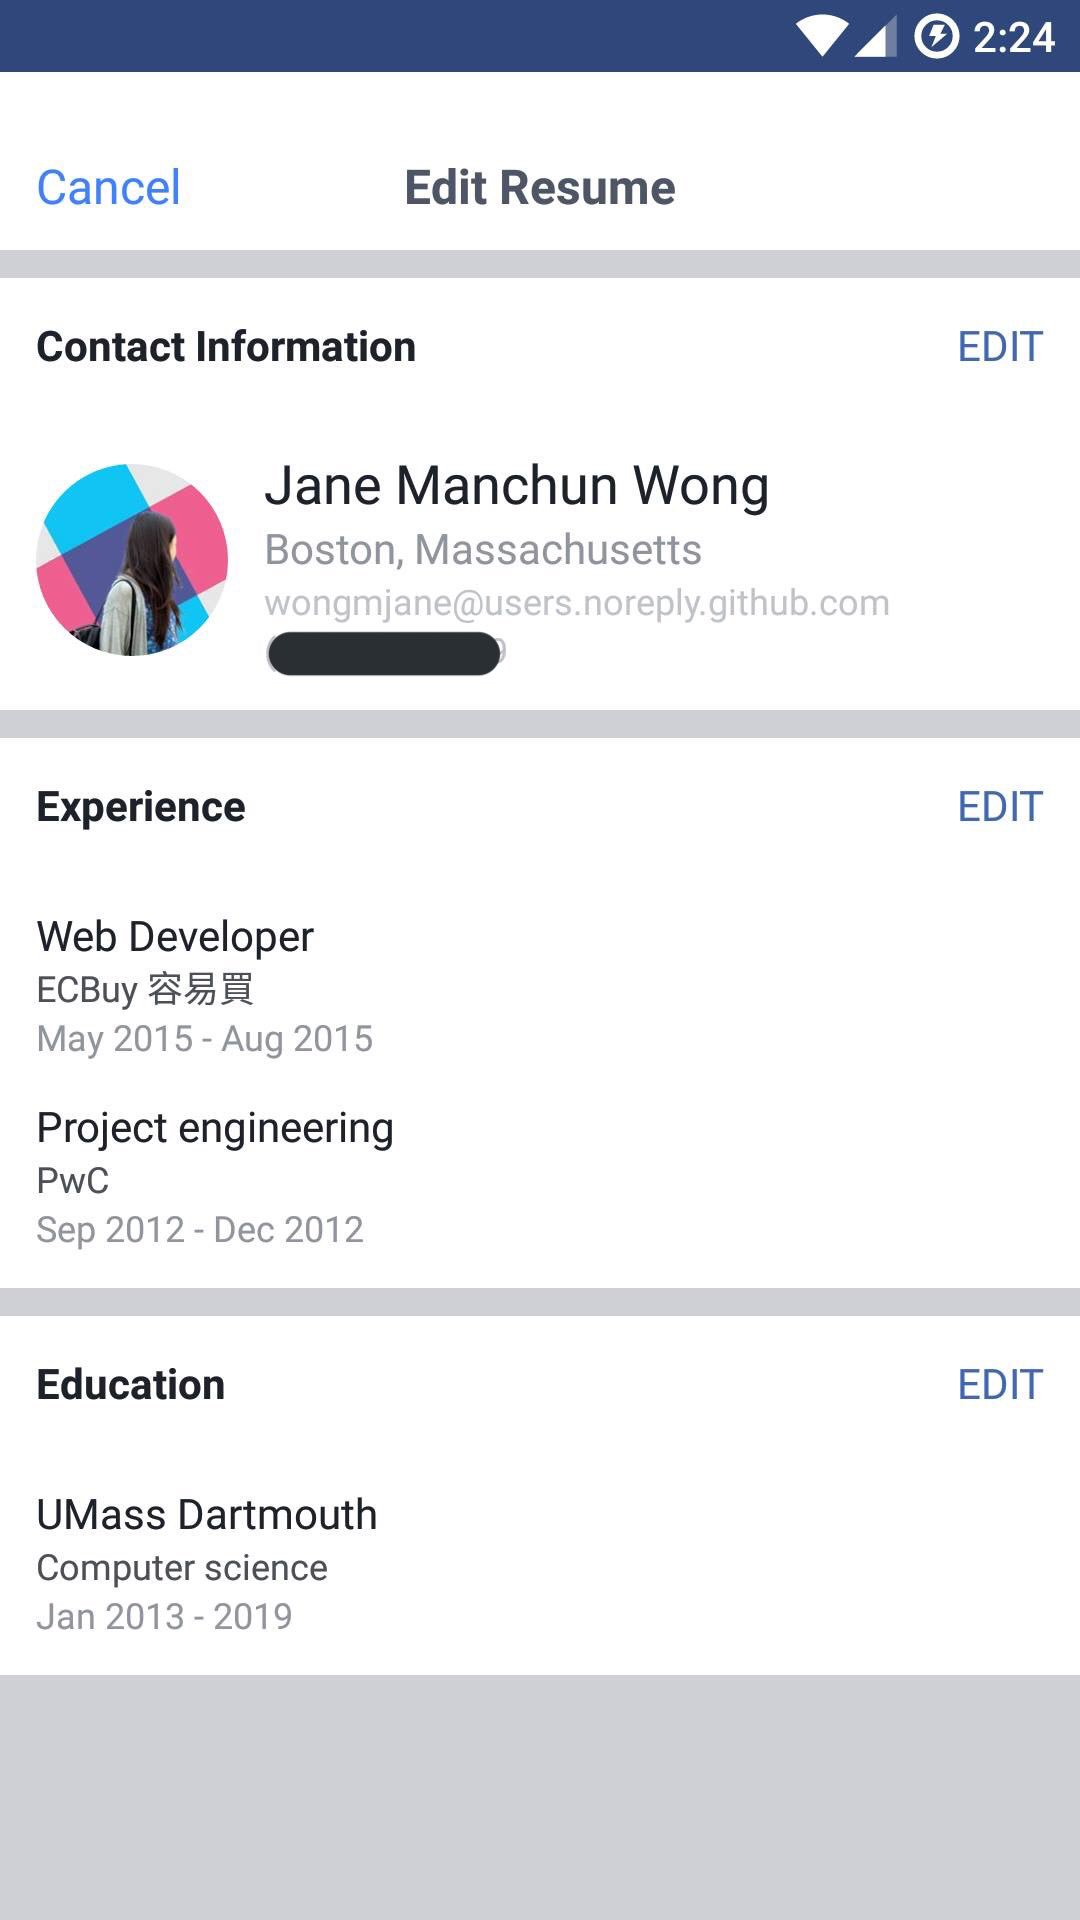 Resume on facebook example cover letter for a pa job